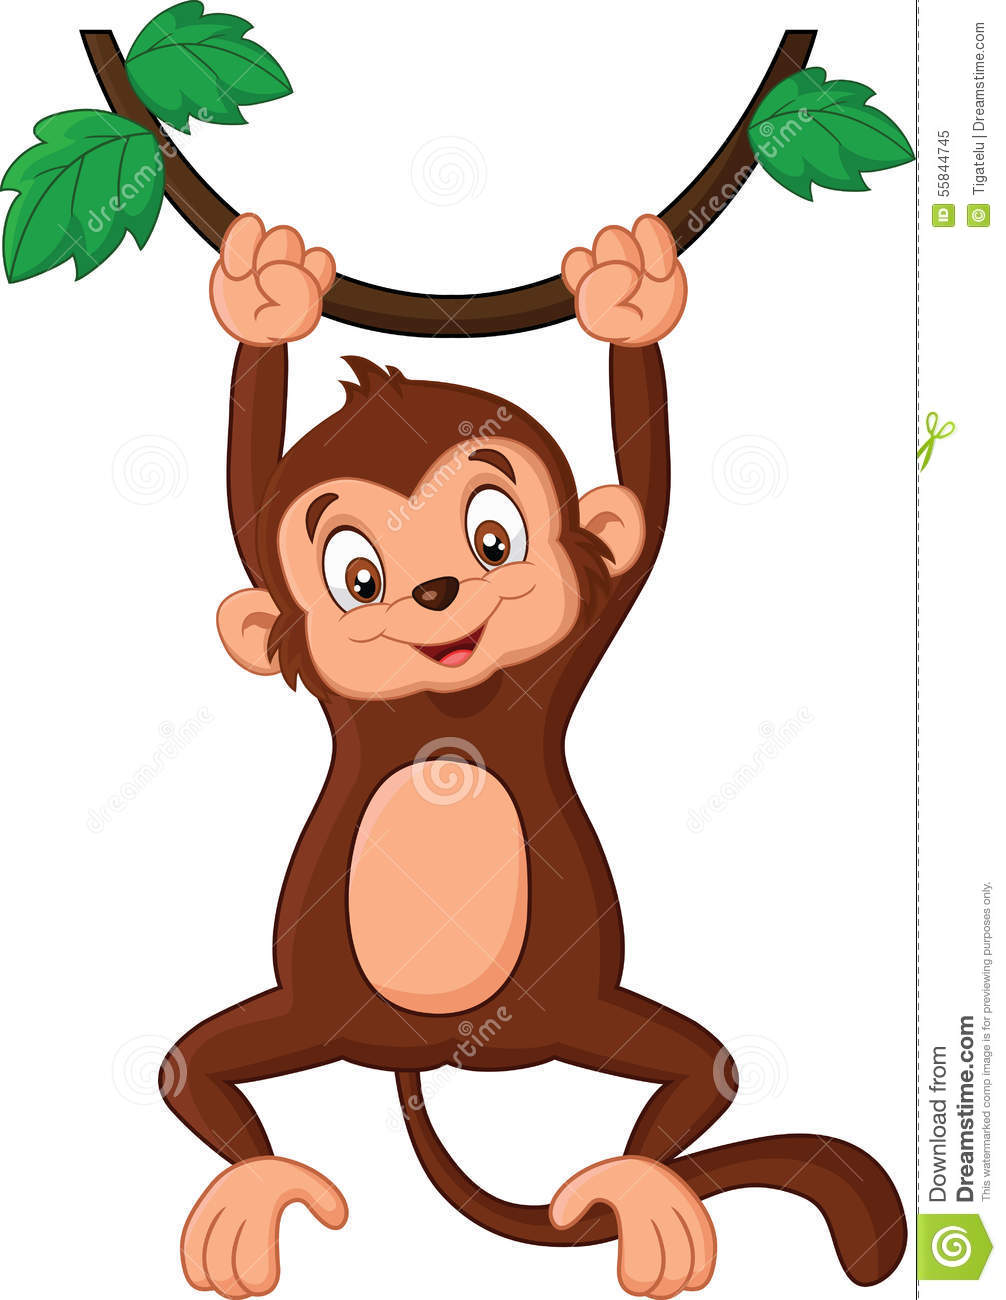 clipart monkey hanging from tree - photo #29